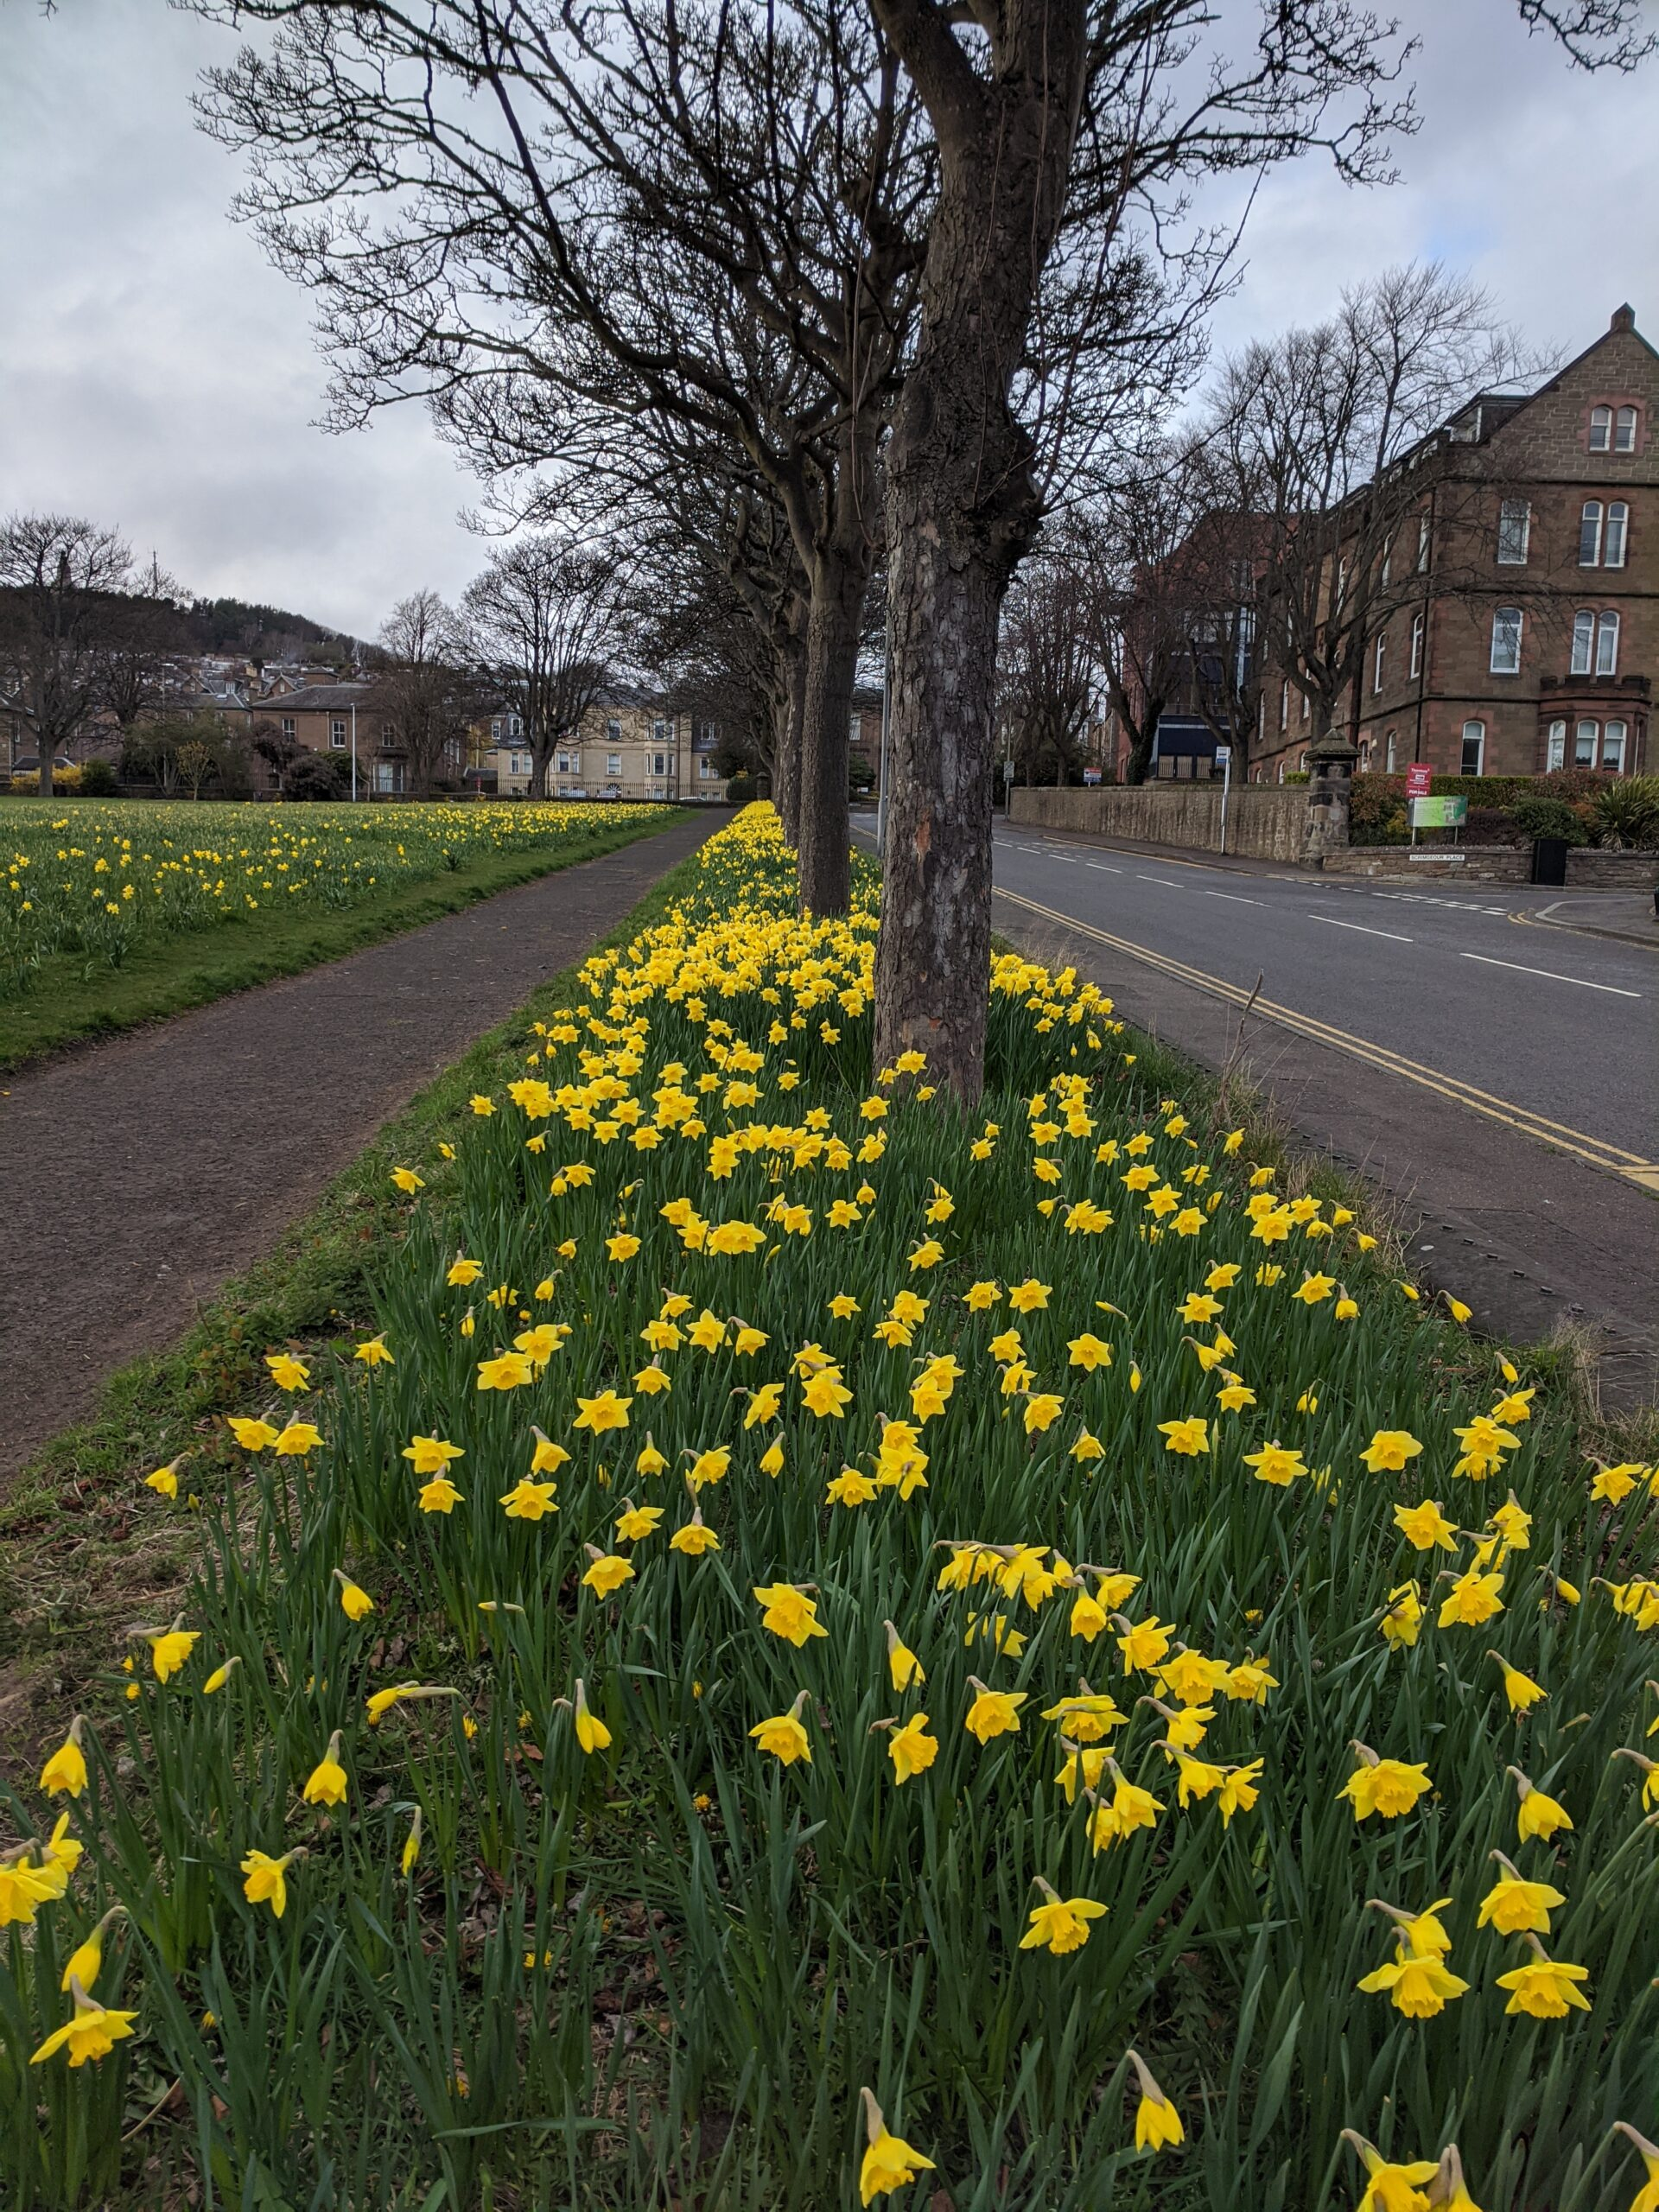 Daffodils in Dudhope Park, Dundee